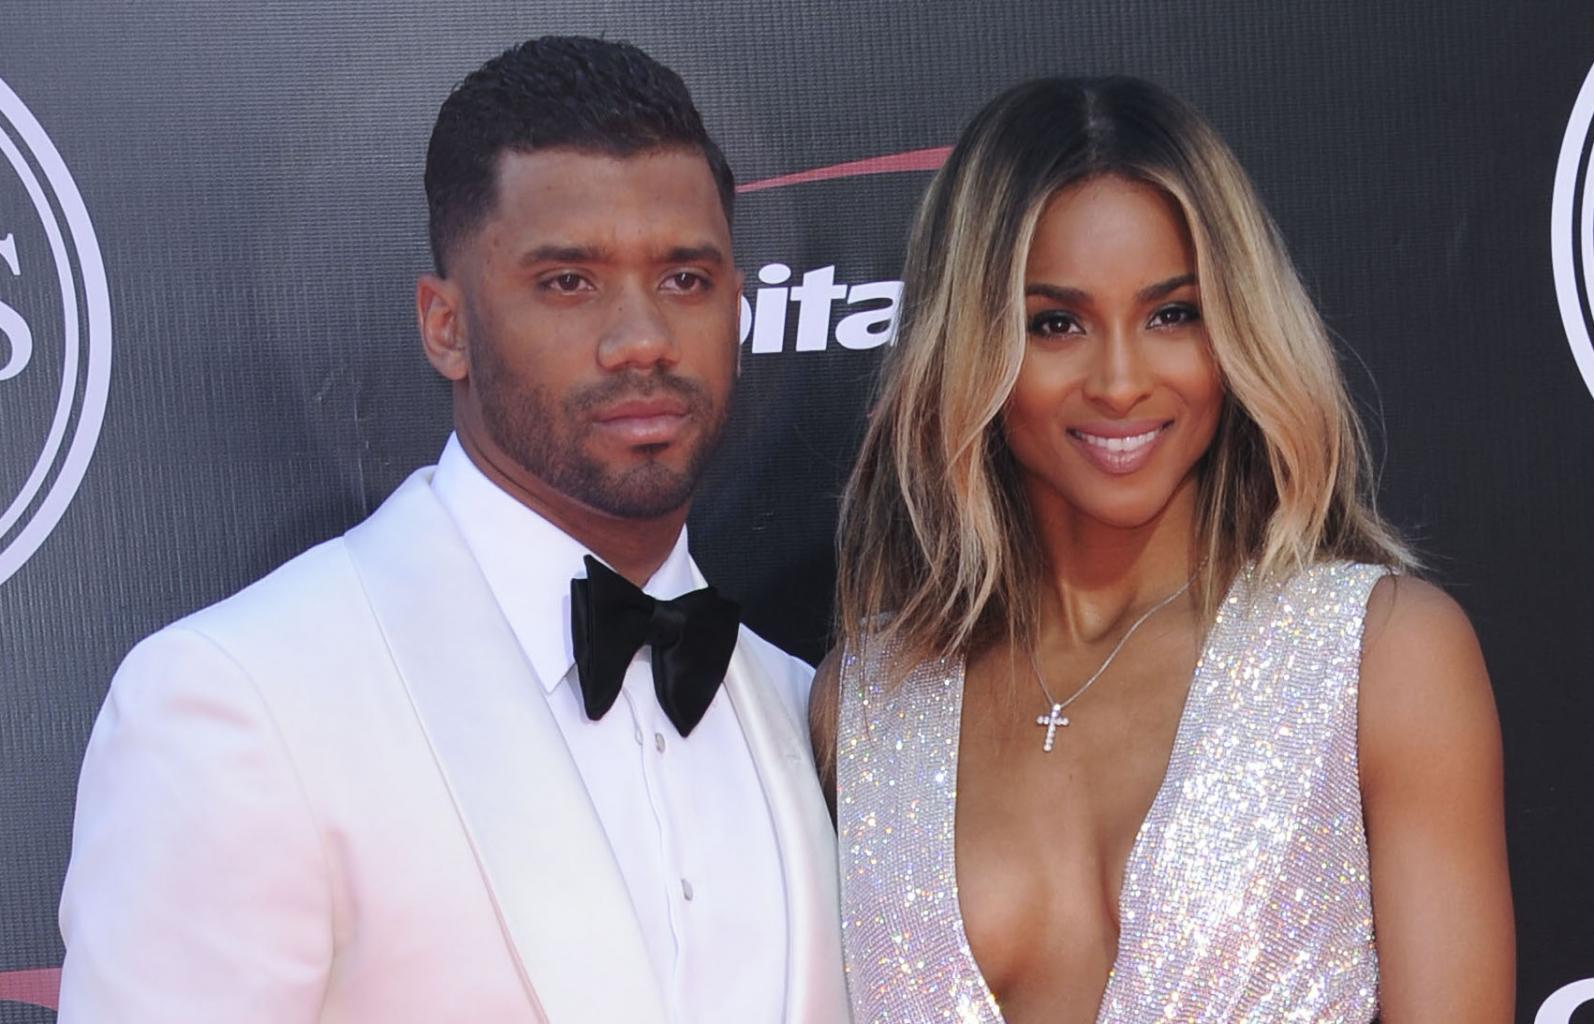 Russell Wilson Writes Sweet Note To Ciara Aver Devastating NFL Playoff Loss